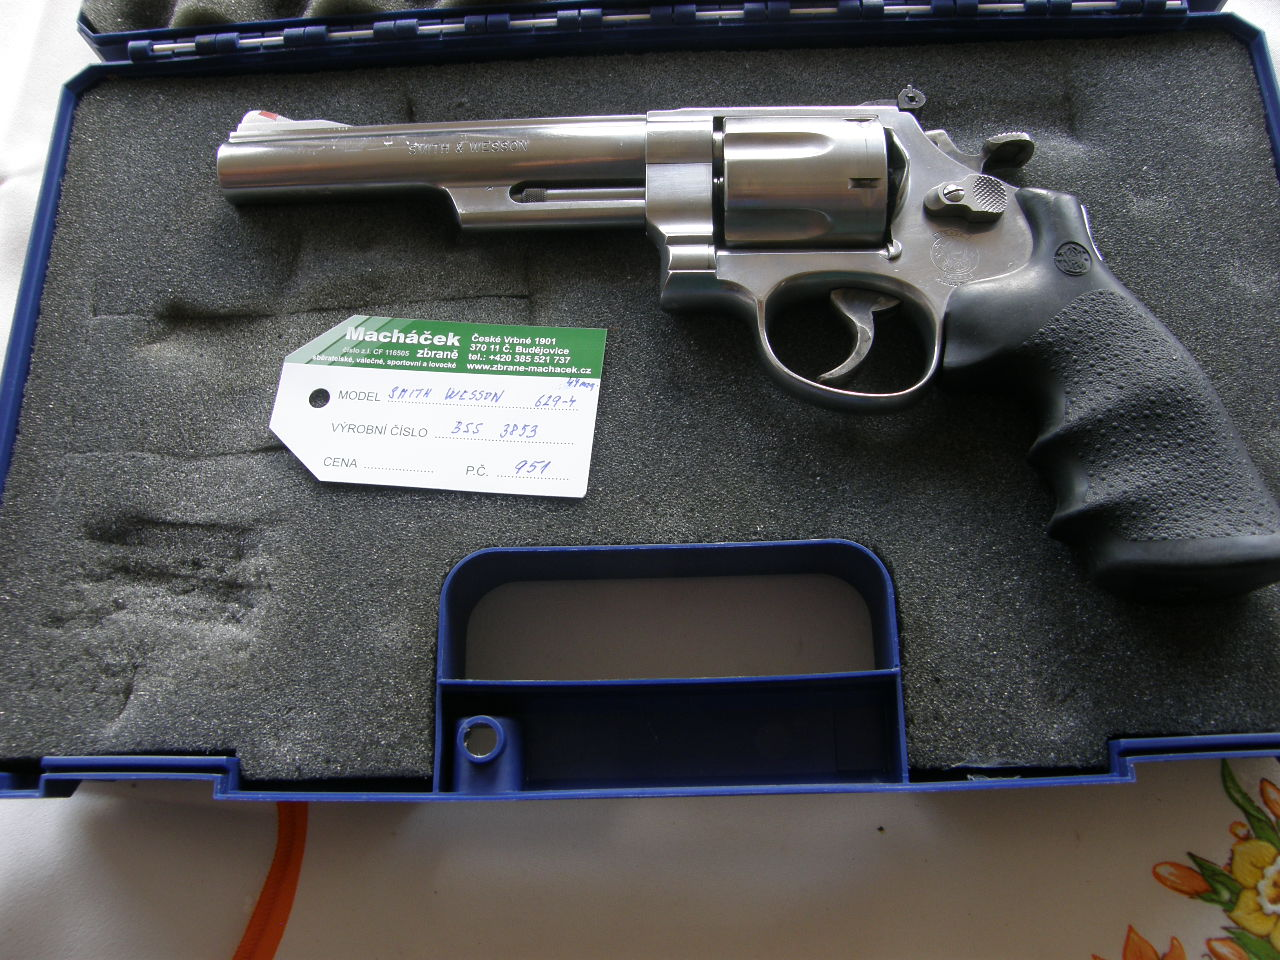 Revolver Smith Wesson Mod.629-4 v.č BBS 3853 r. 44 Mag